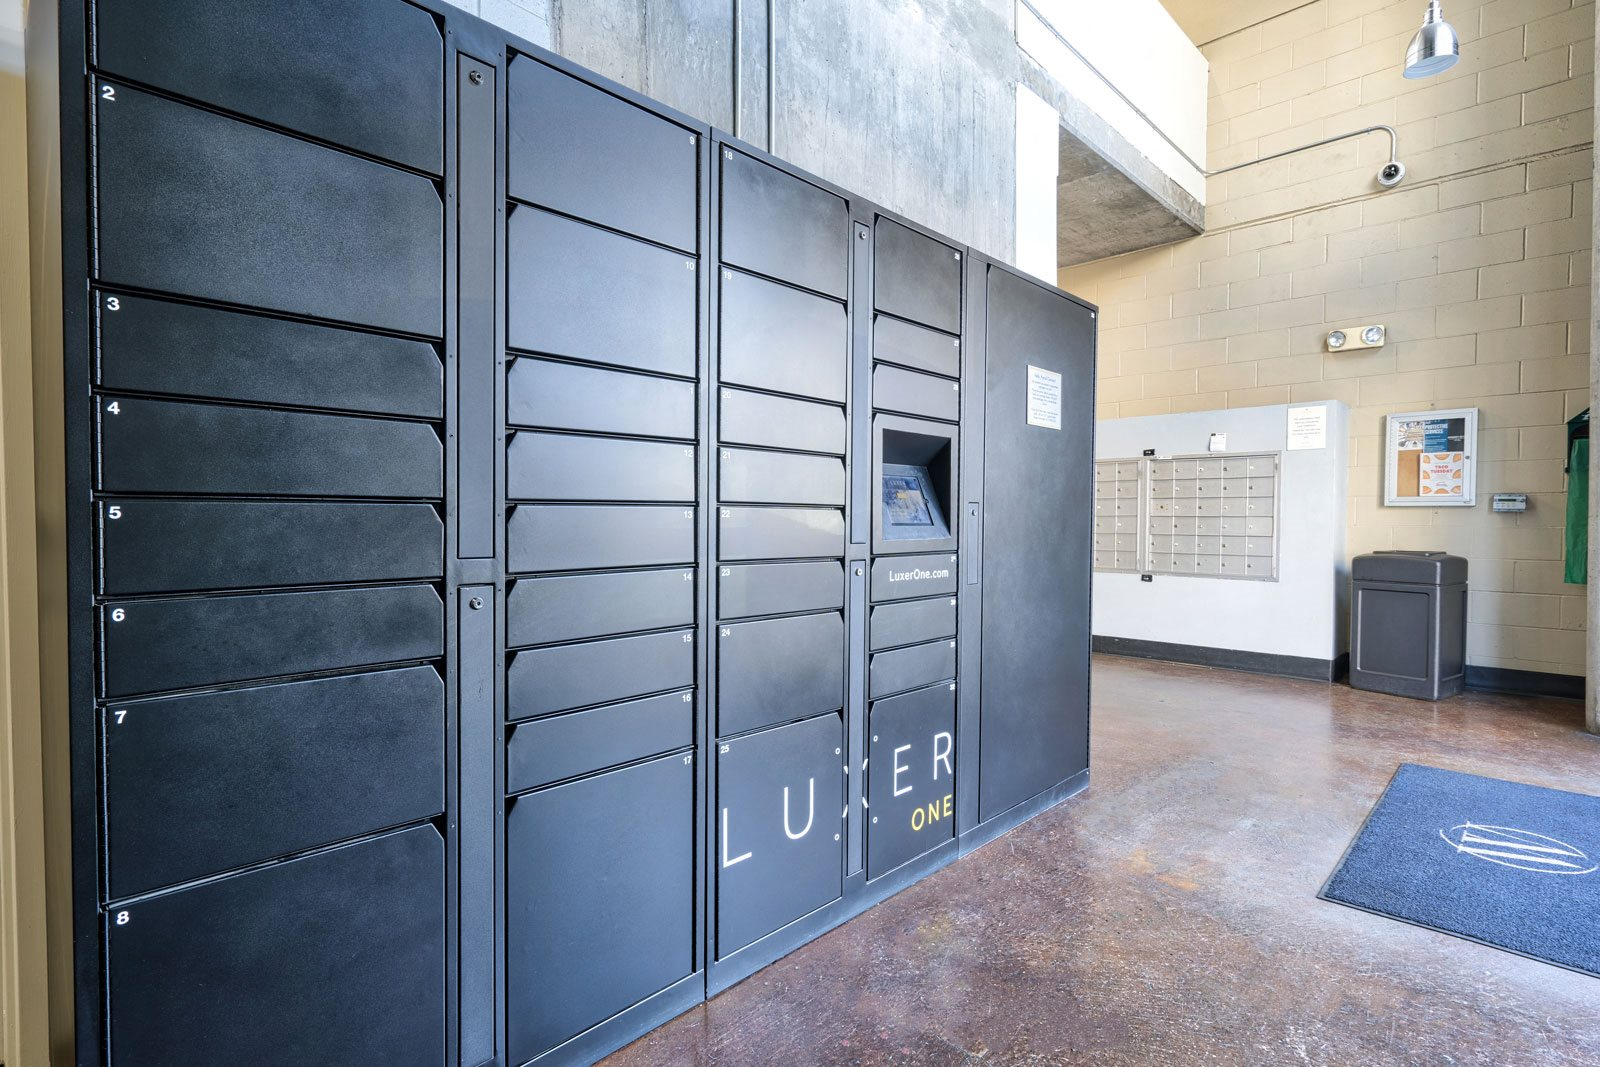 Luxer One 24/7 package system at Allegro at Jack London Square, 240 3rd Street, CA